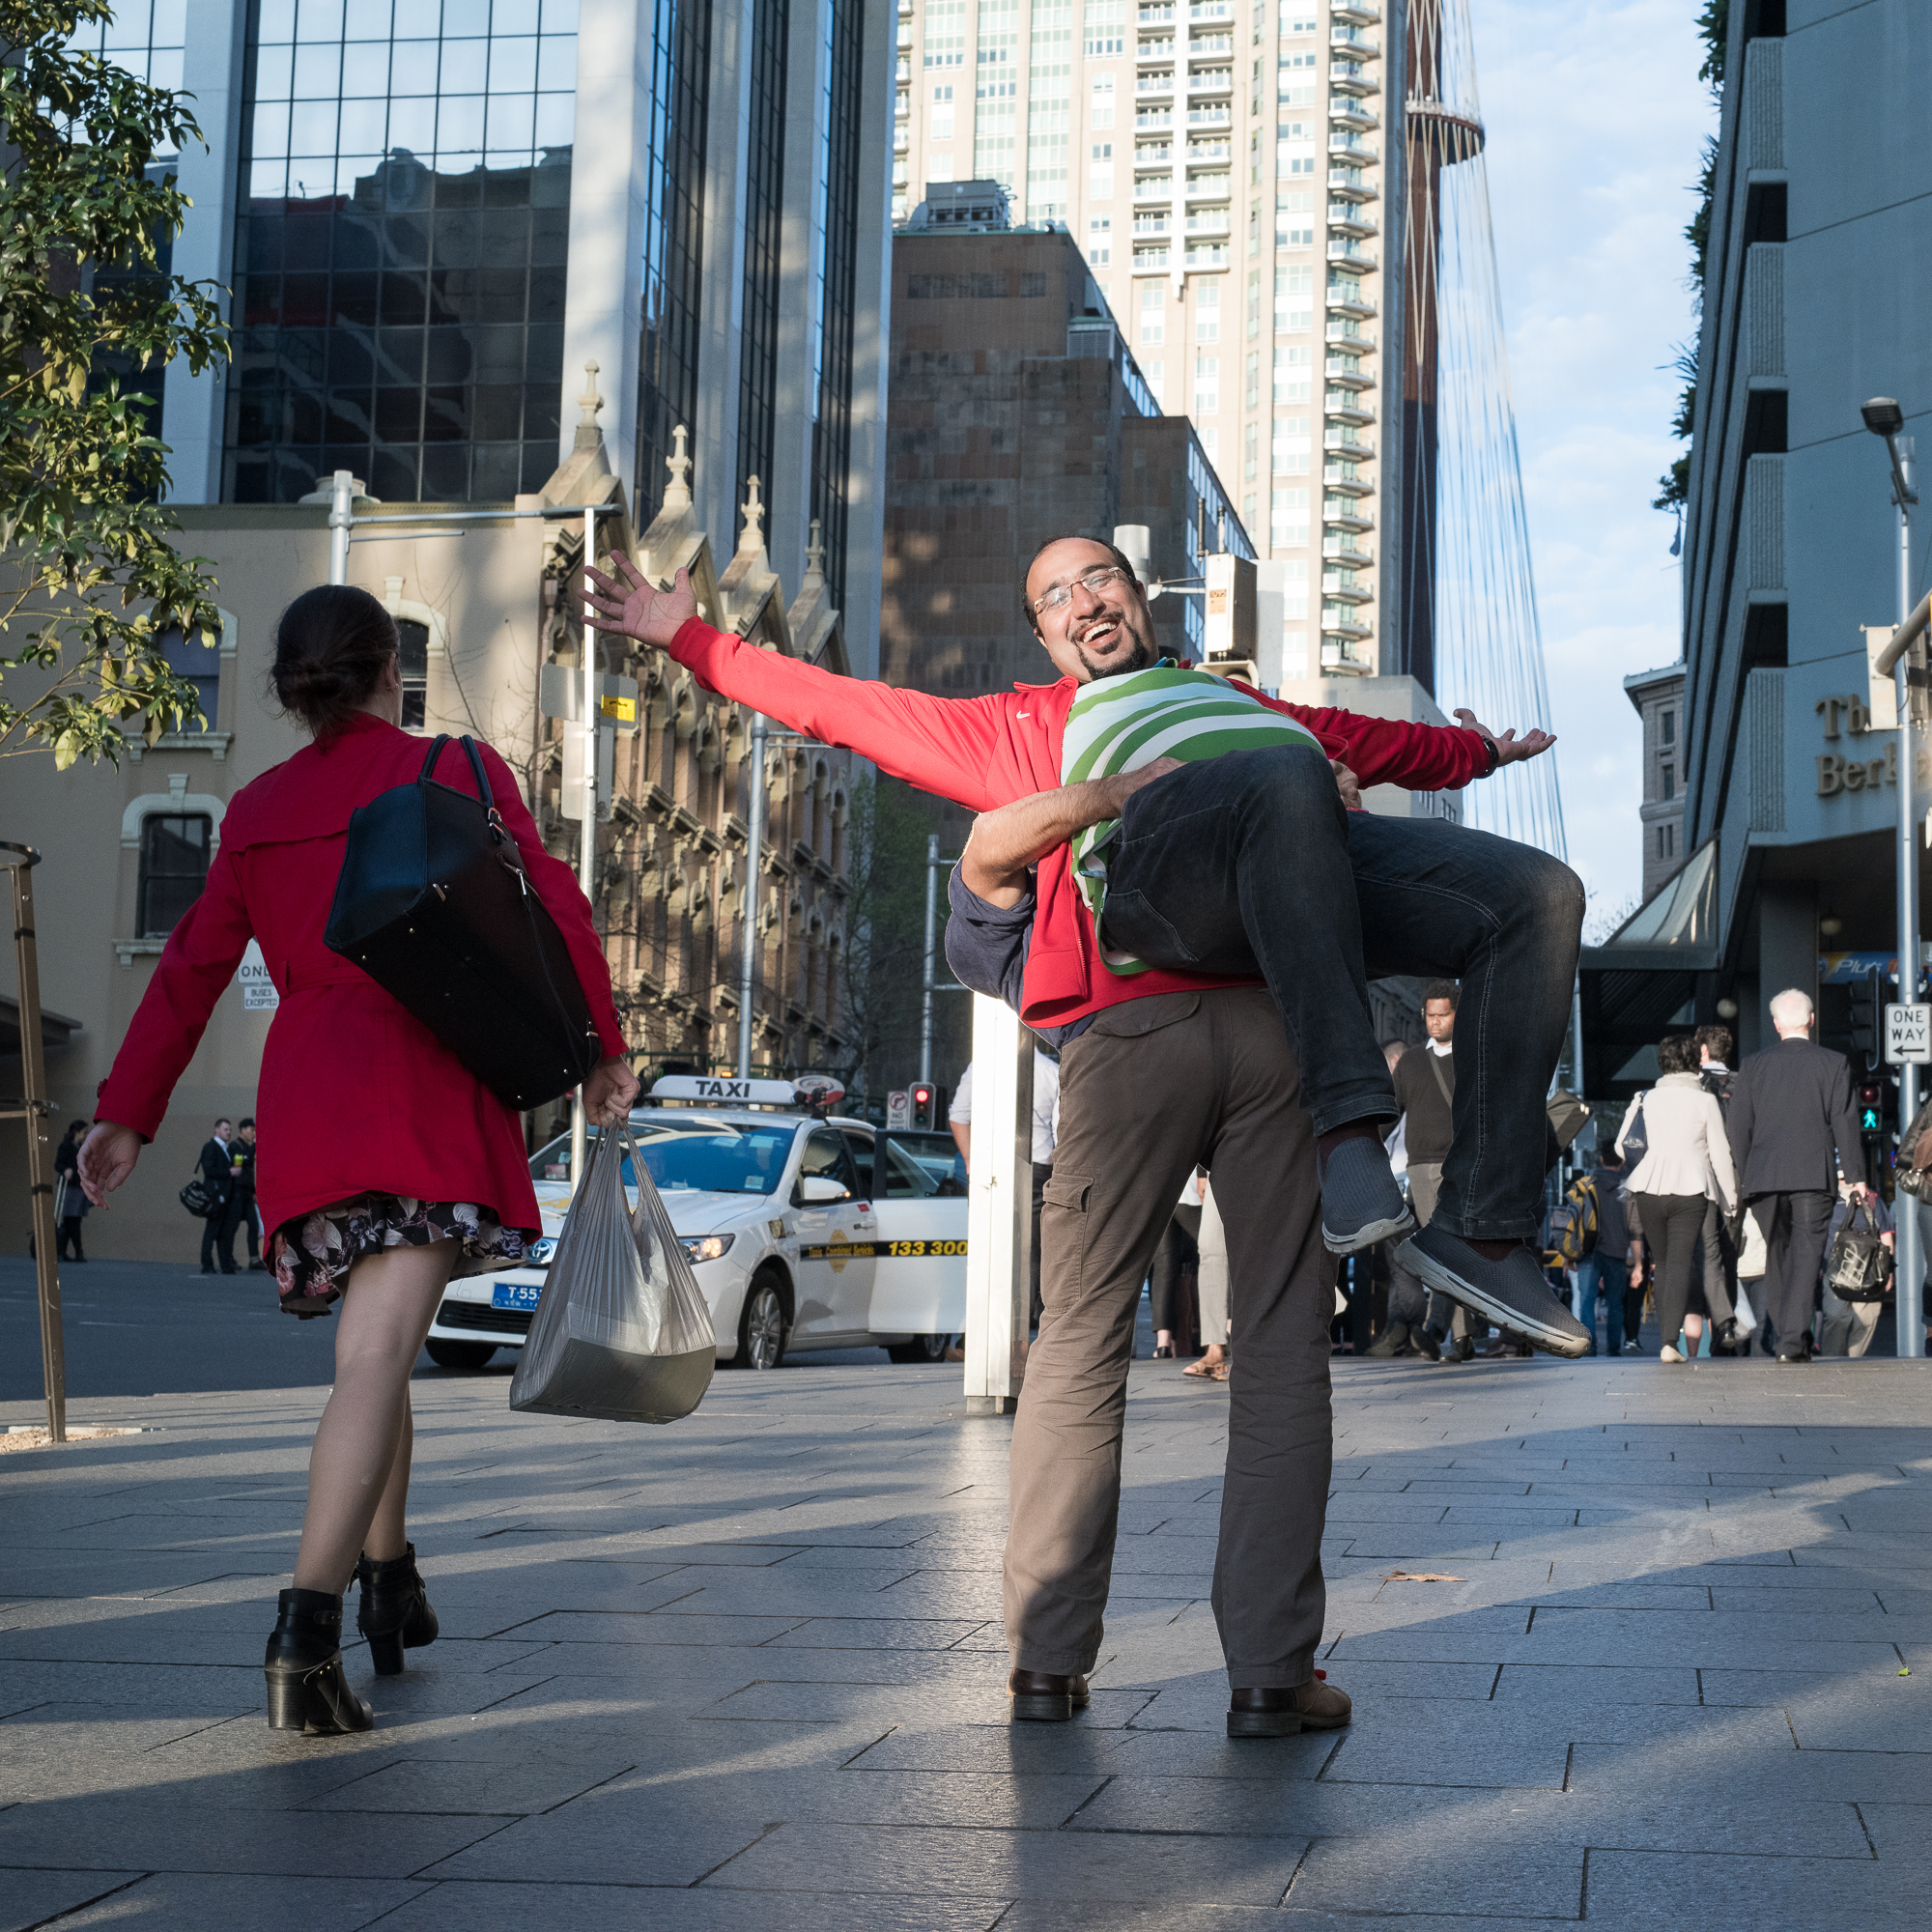 Street Sydney - With a girl in red